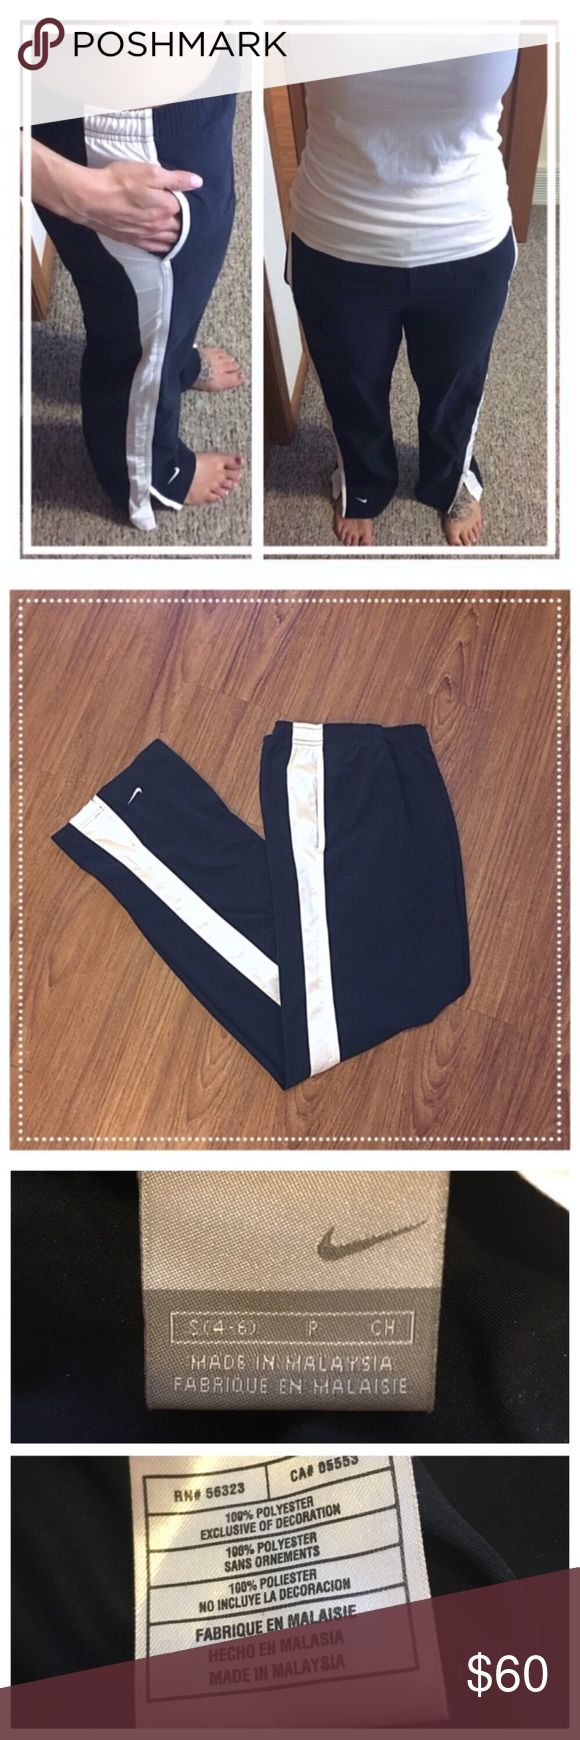 """Nike navy blue/white boot cut pants with pockets 📦Same day shipping (as long as P.O. is open for business). ❤ Measurements are approximate. Descriptions are accurate to the best of my knowledge.  These classic navy blue and white track pants from Nike feature a 4"""" slit on the outside of each pant leg so that the pants lay nicely over top of your shoes. 100% polyester. Elastic waist with internal functional drawstring. Flat measurements: 15"""" across waist, 10"""" rise, 31"""" inseam. Excellent…"""